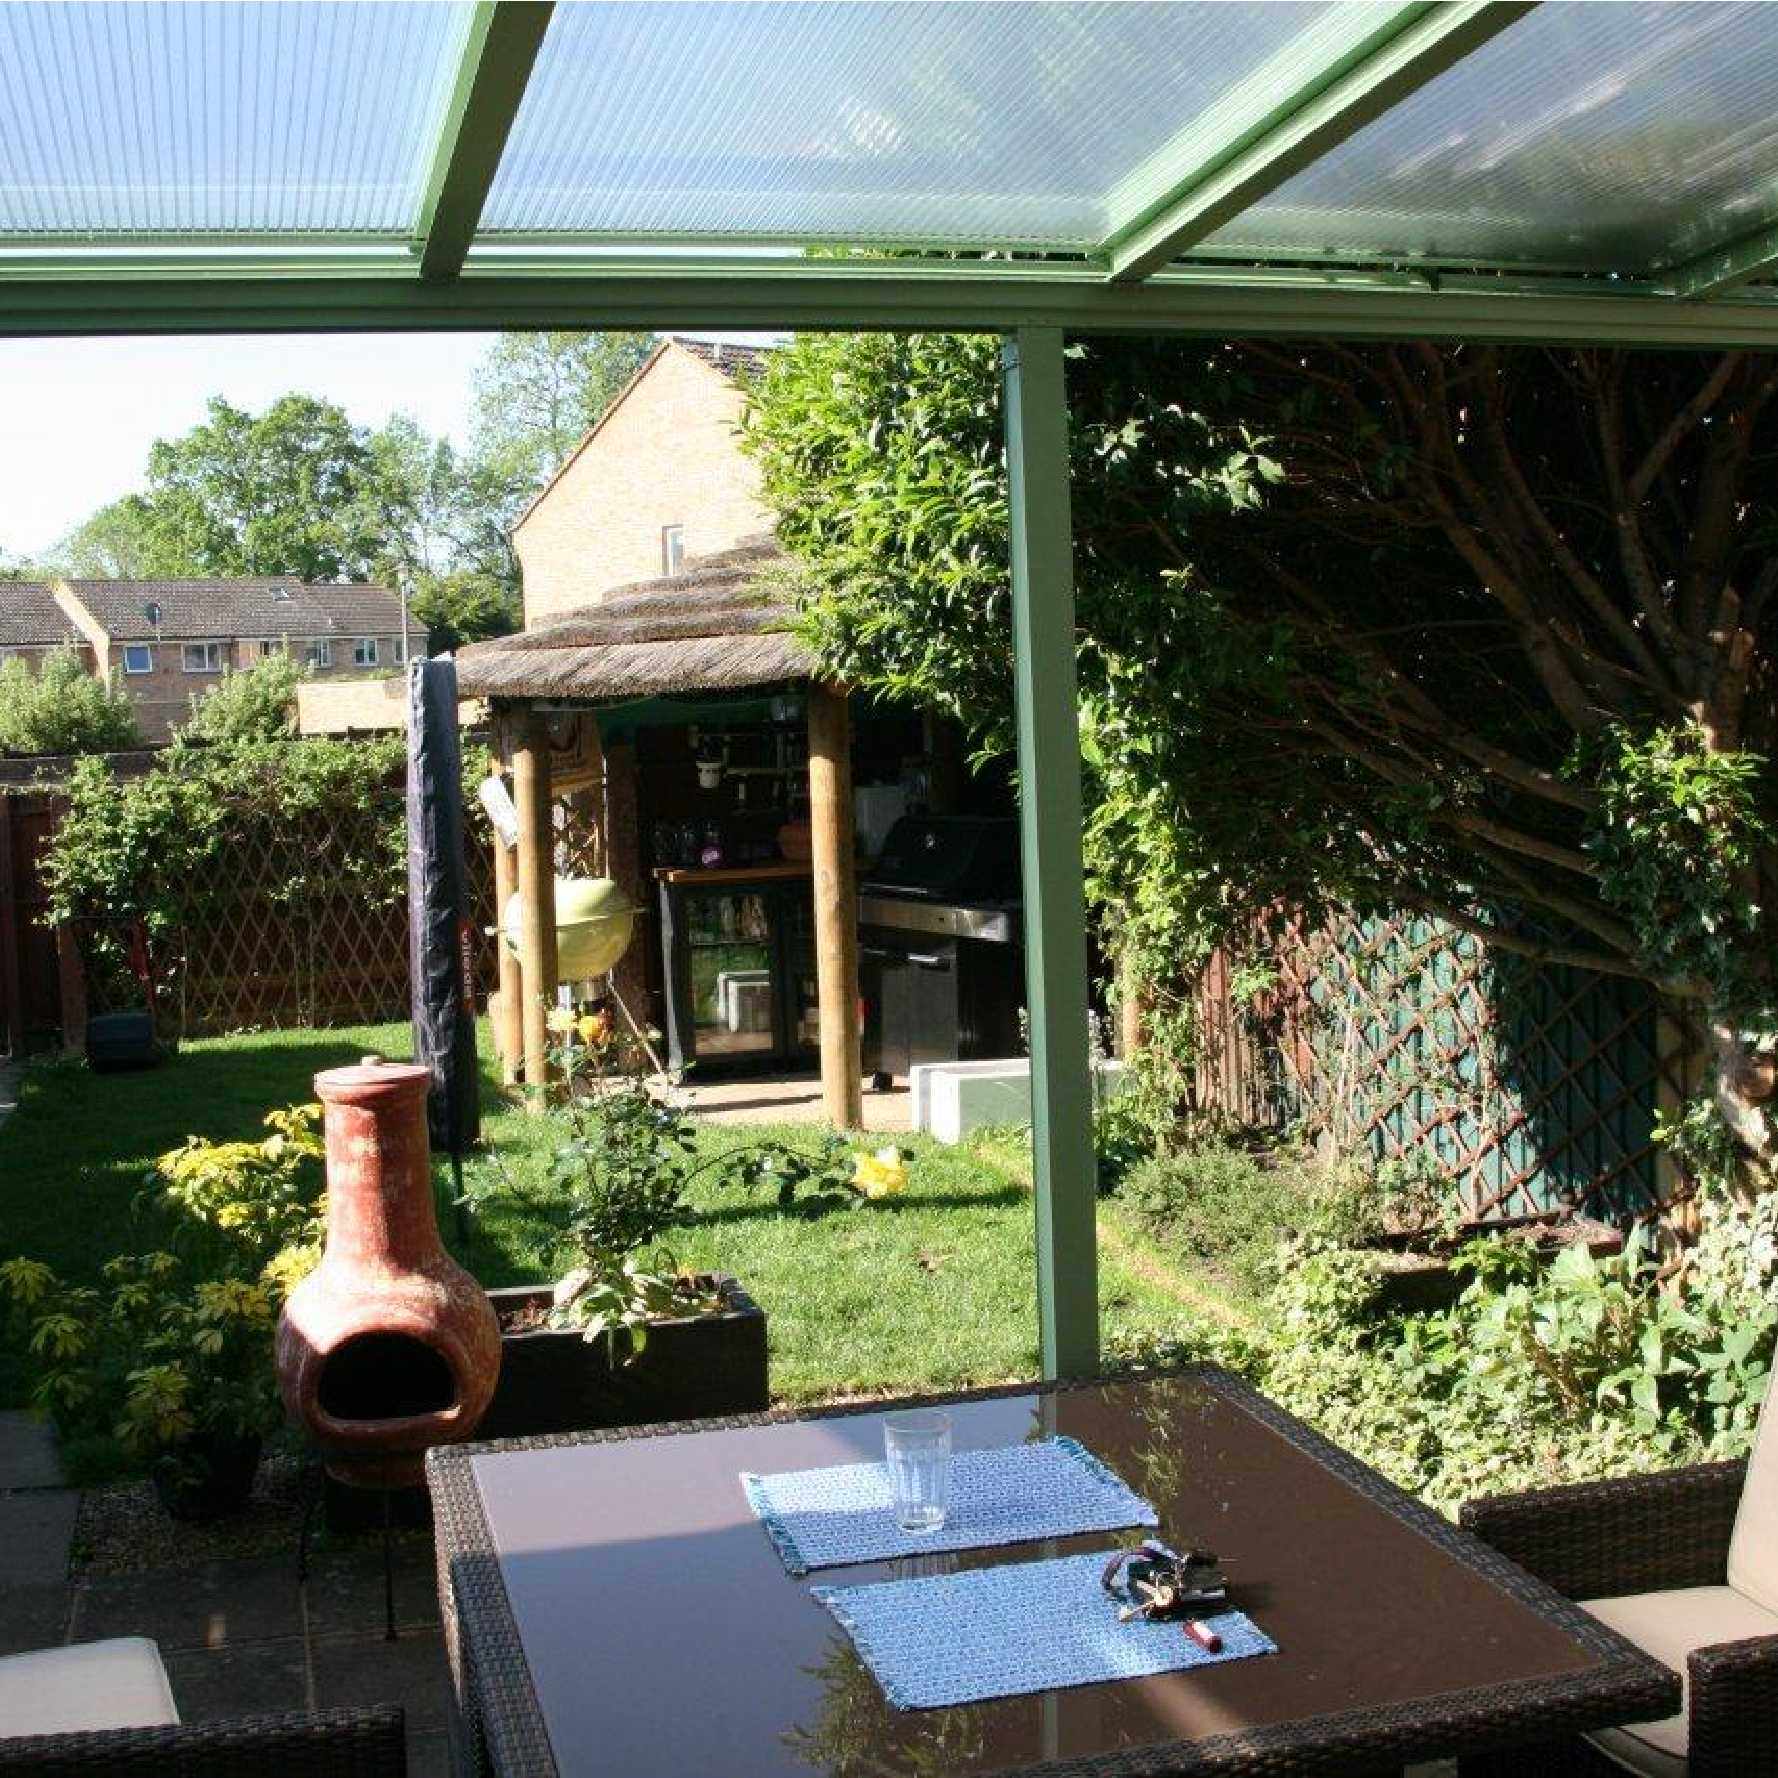 Affordable Omega Smart Lean-To Canopy with 16mm Polycarbonate Glazing - 4.2m (W) x 4.0m (P), (3) Supporting Posts